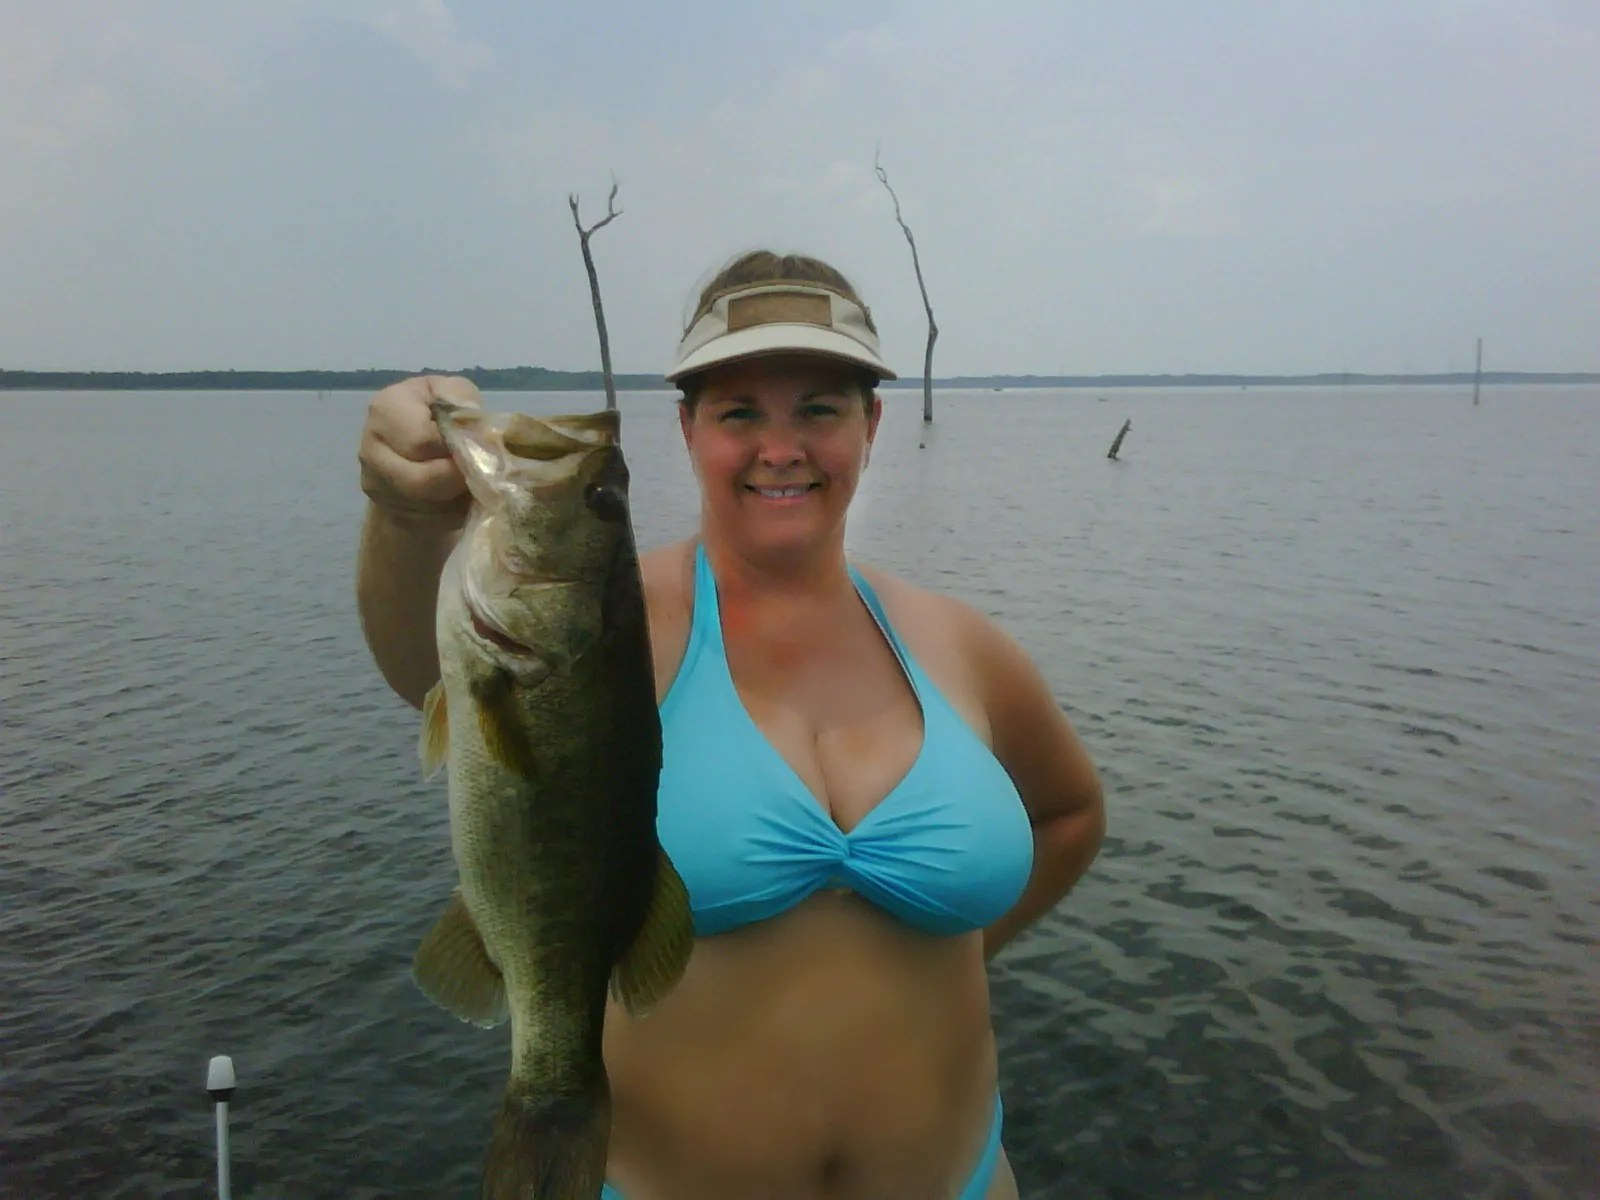 Mine the Nude women bass fishing